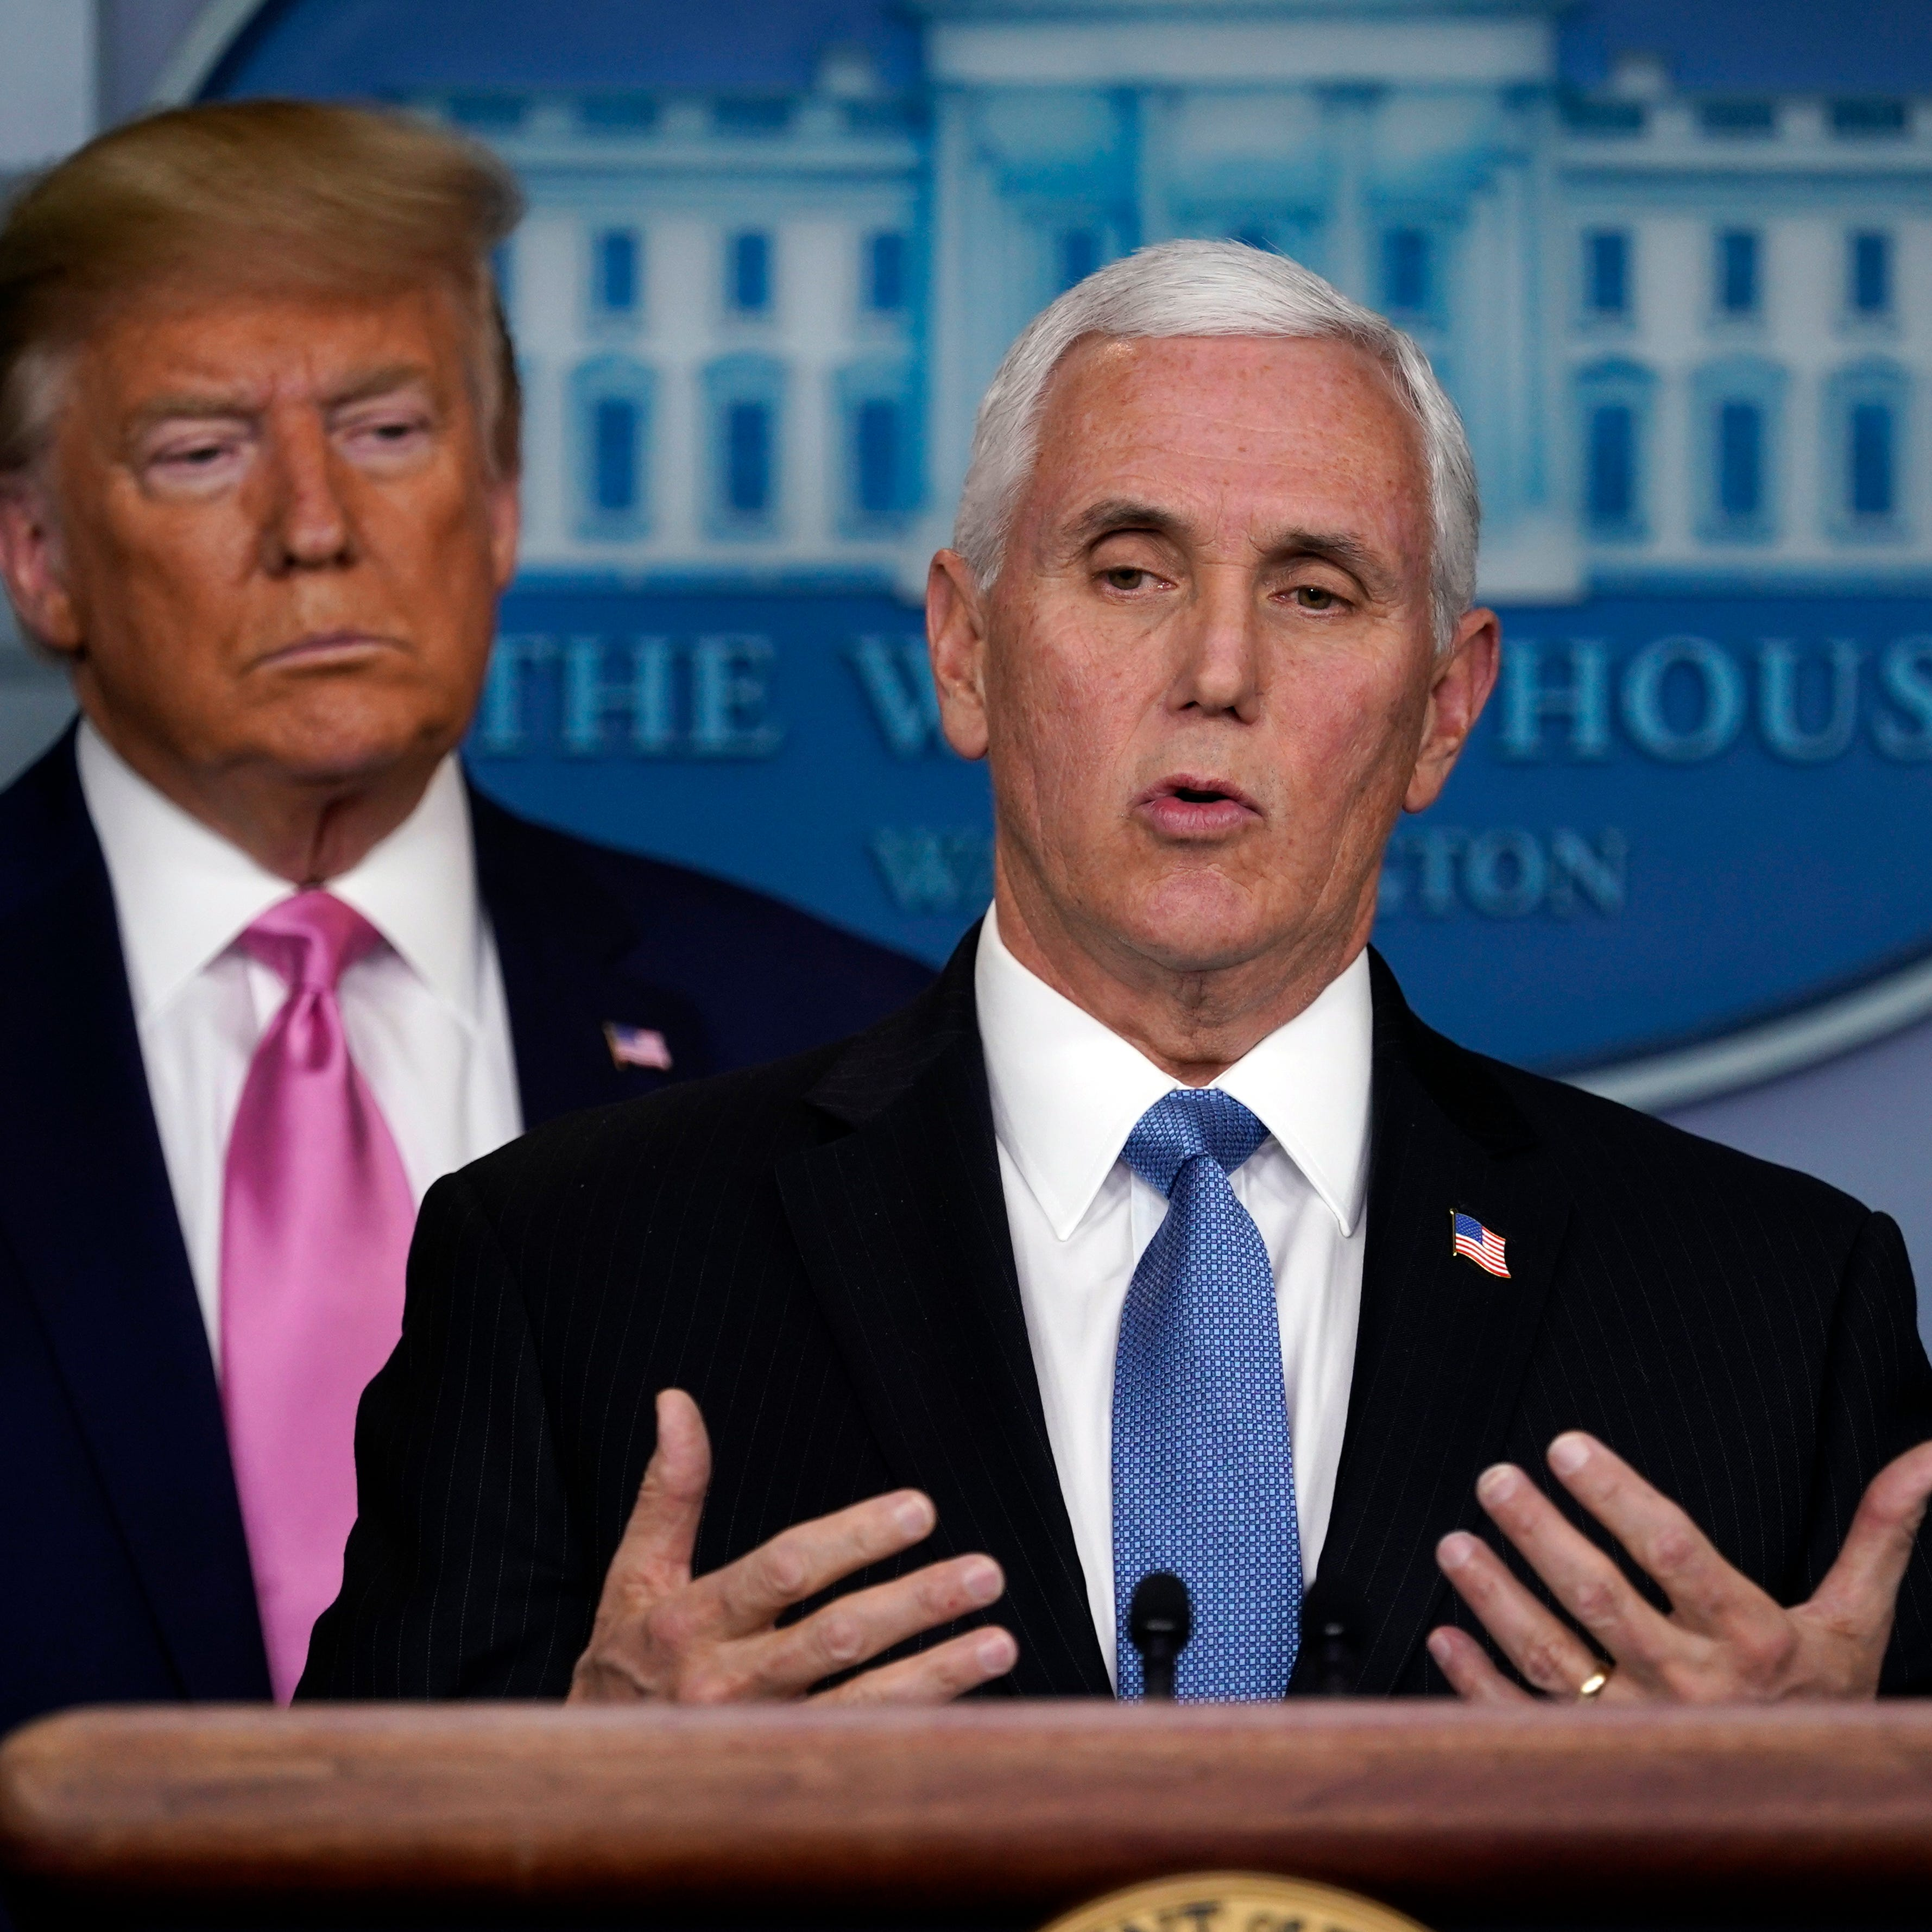 Donald Trump S Vice President 10 Things To Know About Indiana Gov Mike Pence